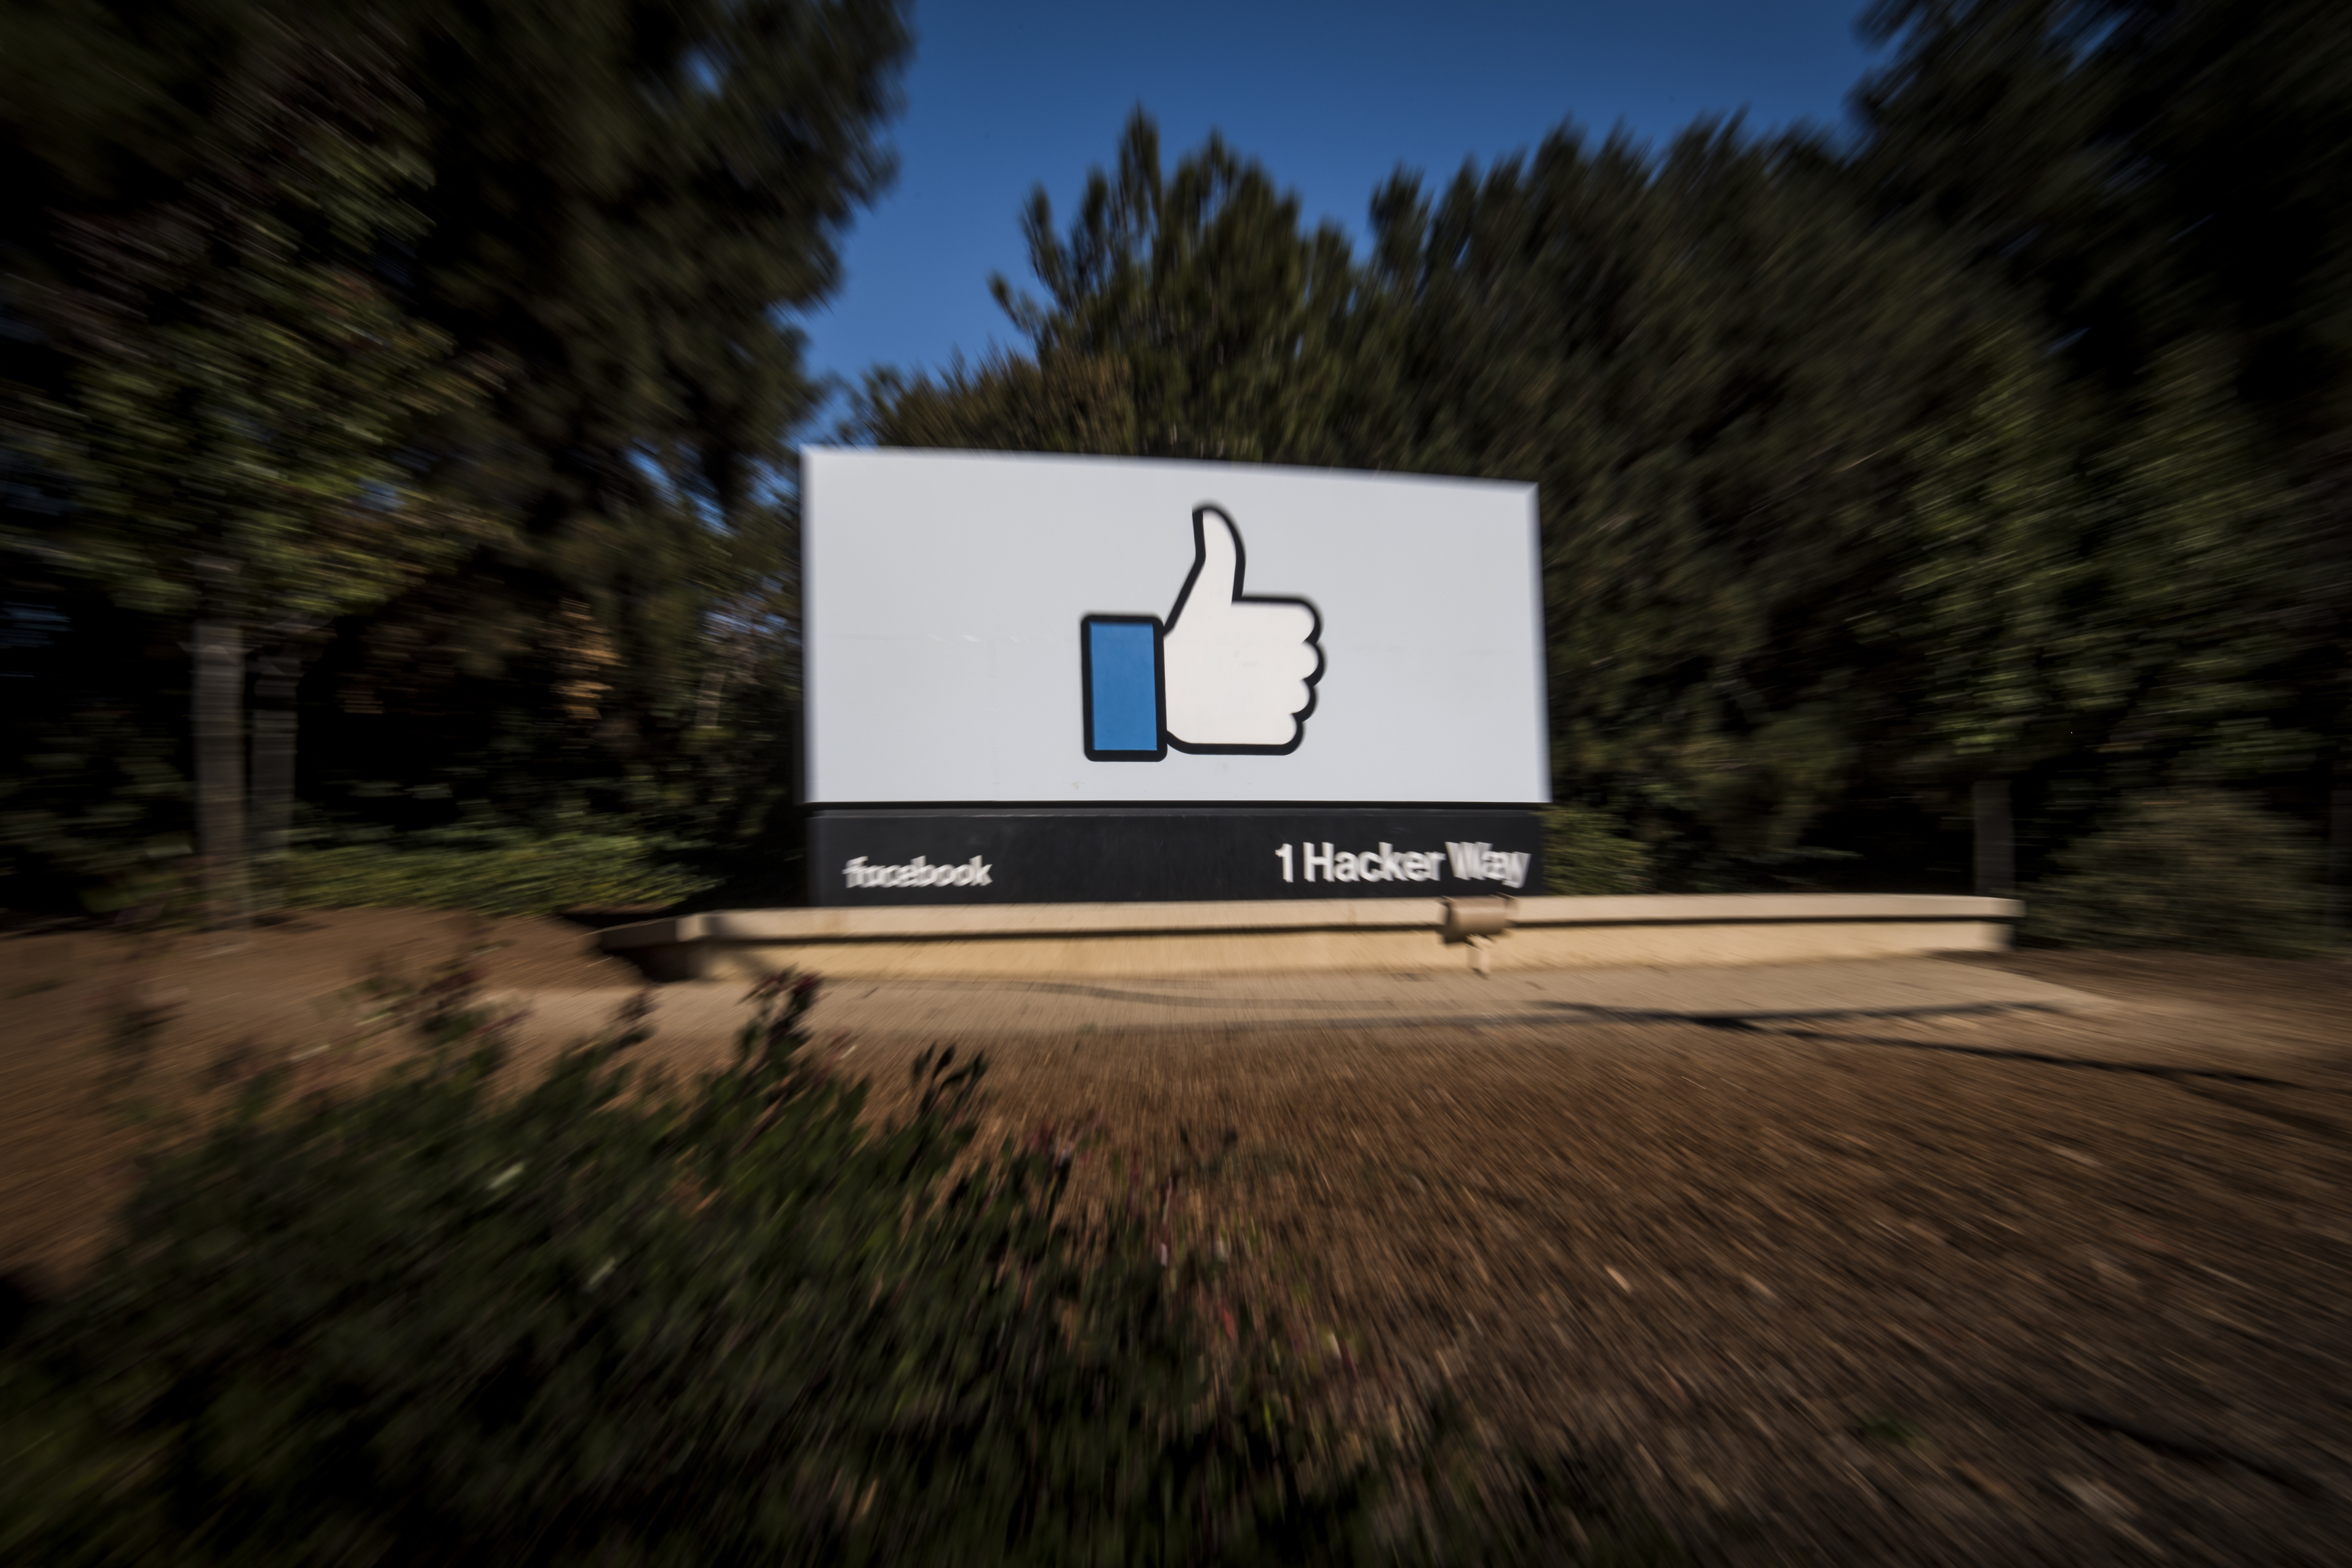 Signage is displayed outside Facebook Inc. headquarters in Menlo Park, California, U.S., on Tuesday, Oct. 30, 2018.